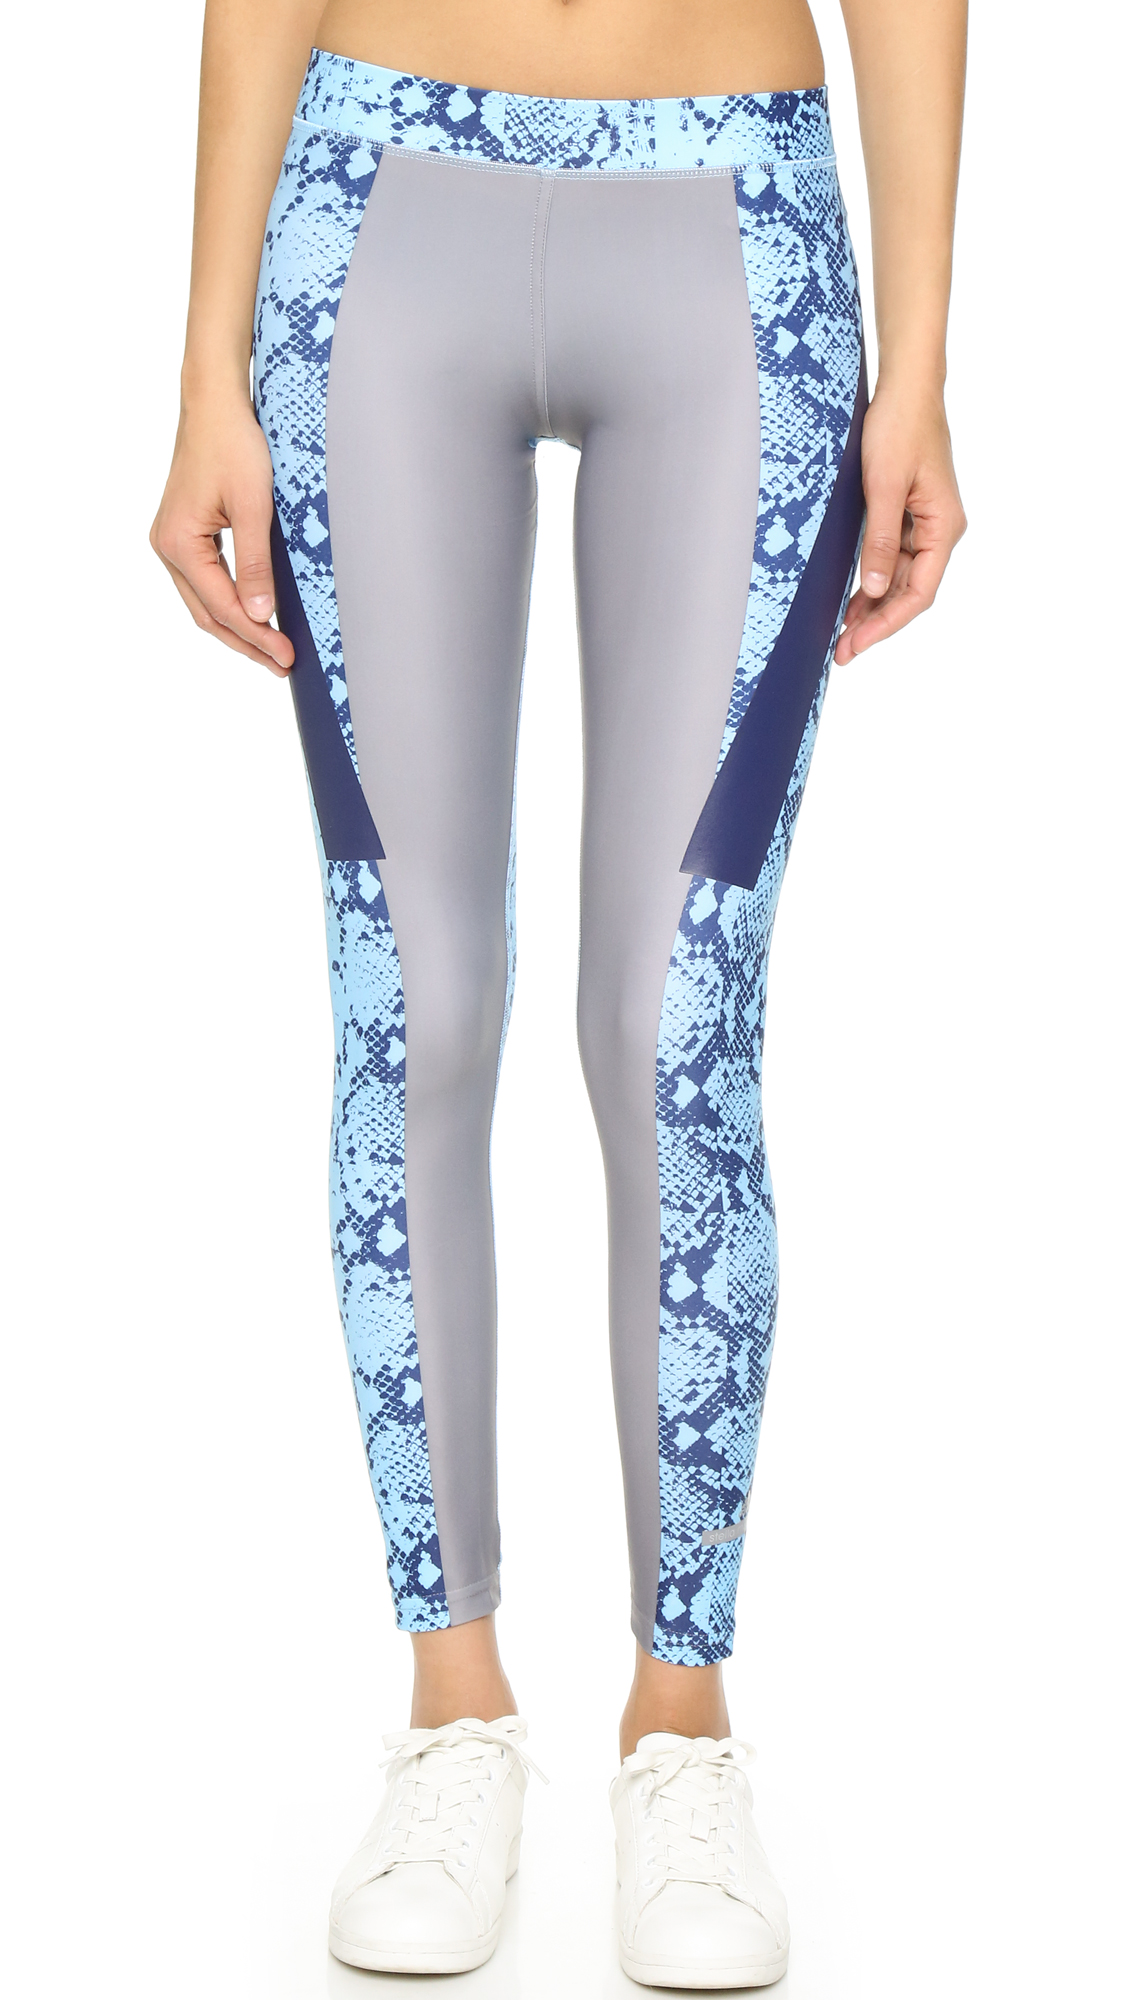 Solid panels and coated stripes bring vivid contrast to these snakeskin print adidas by Stella McCartney leggings. Covered elastic waistband. Fabric: Activewear jersey. 82% polyester/18% spandex. Wash cold. Imported, Philippines. Measurements Rise: 8in / 20.5cm Inseam: 27.5in / 70cm